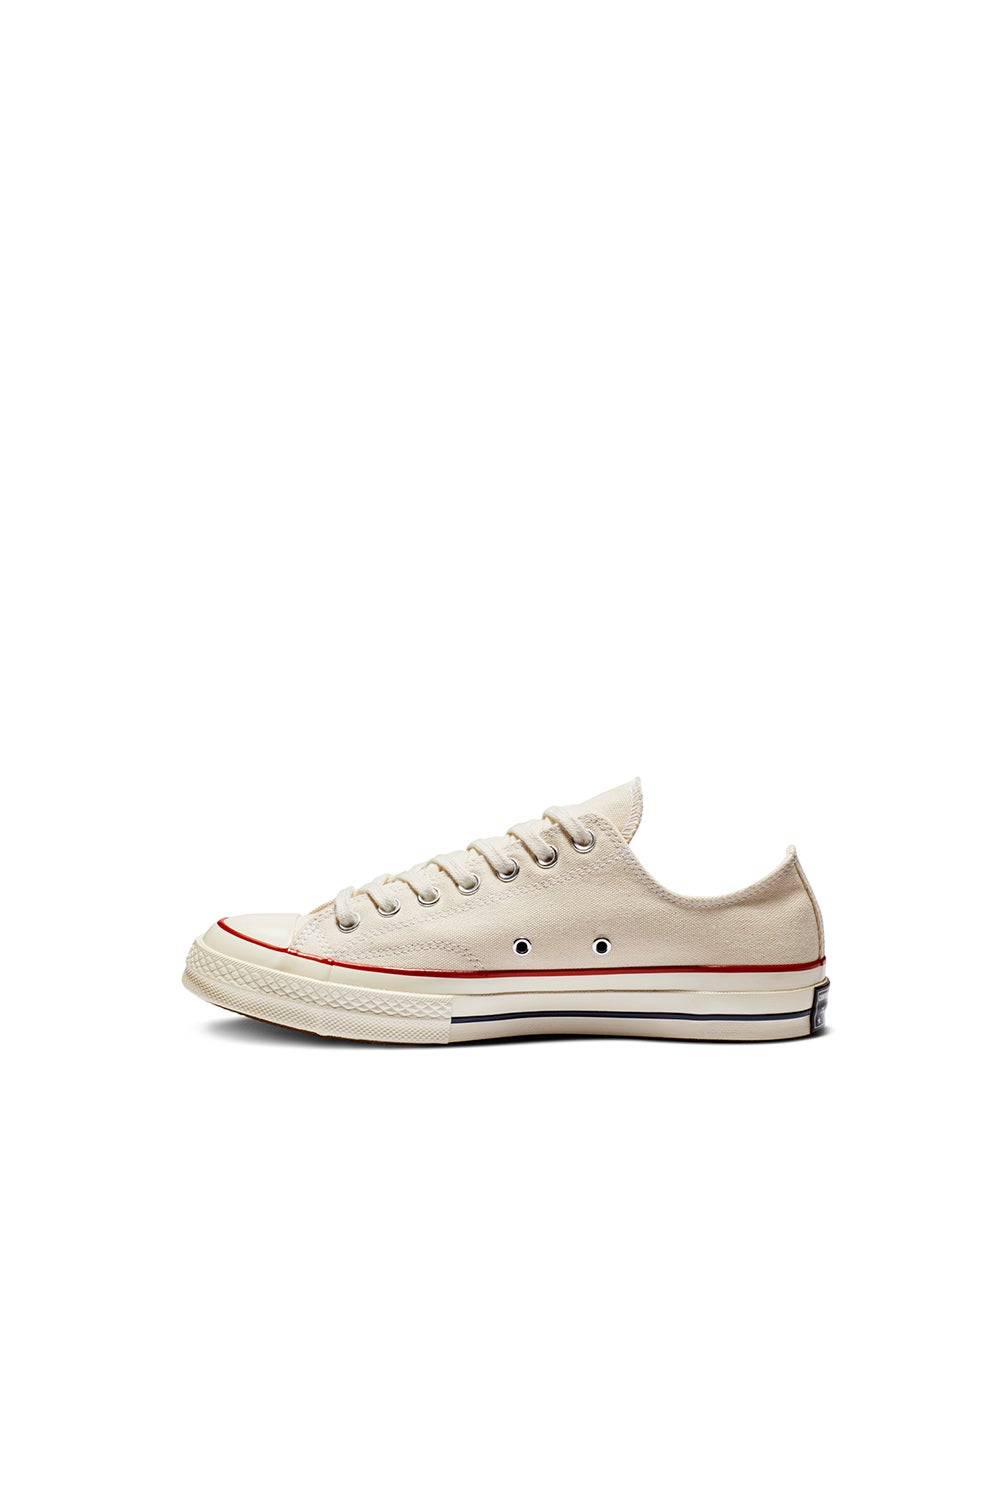 Converse Chuck Taylor All Star 70 Low Parchment